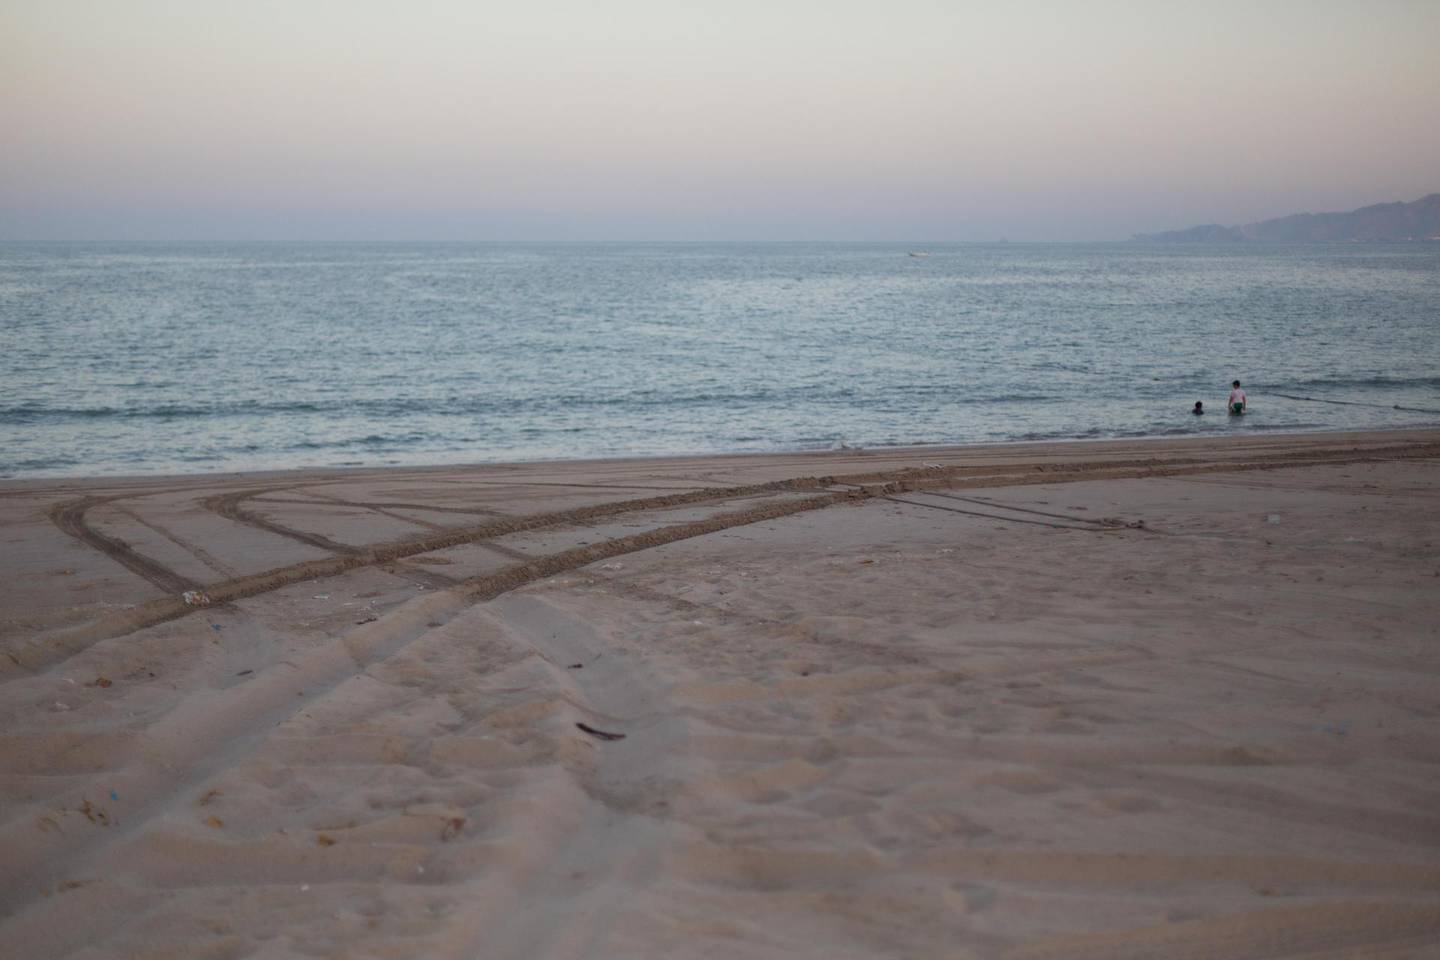 E62WPK Tyre tracks in the sand at dusk, Dibba, Oman. Image shot 10/2013. Exact date unknown. Alison Teale / Alamy Stock Photo